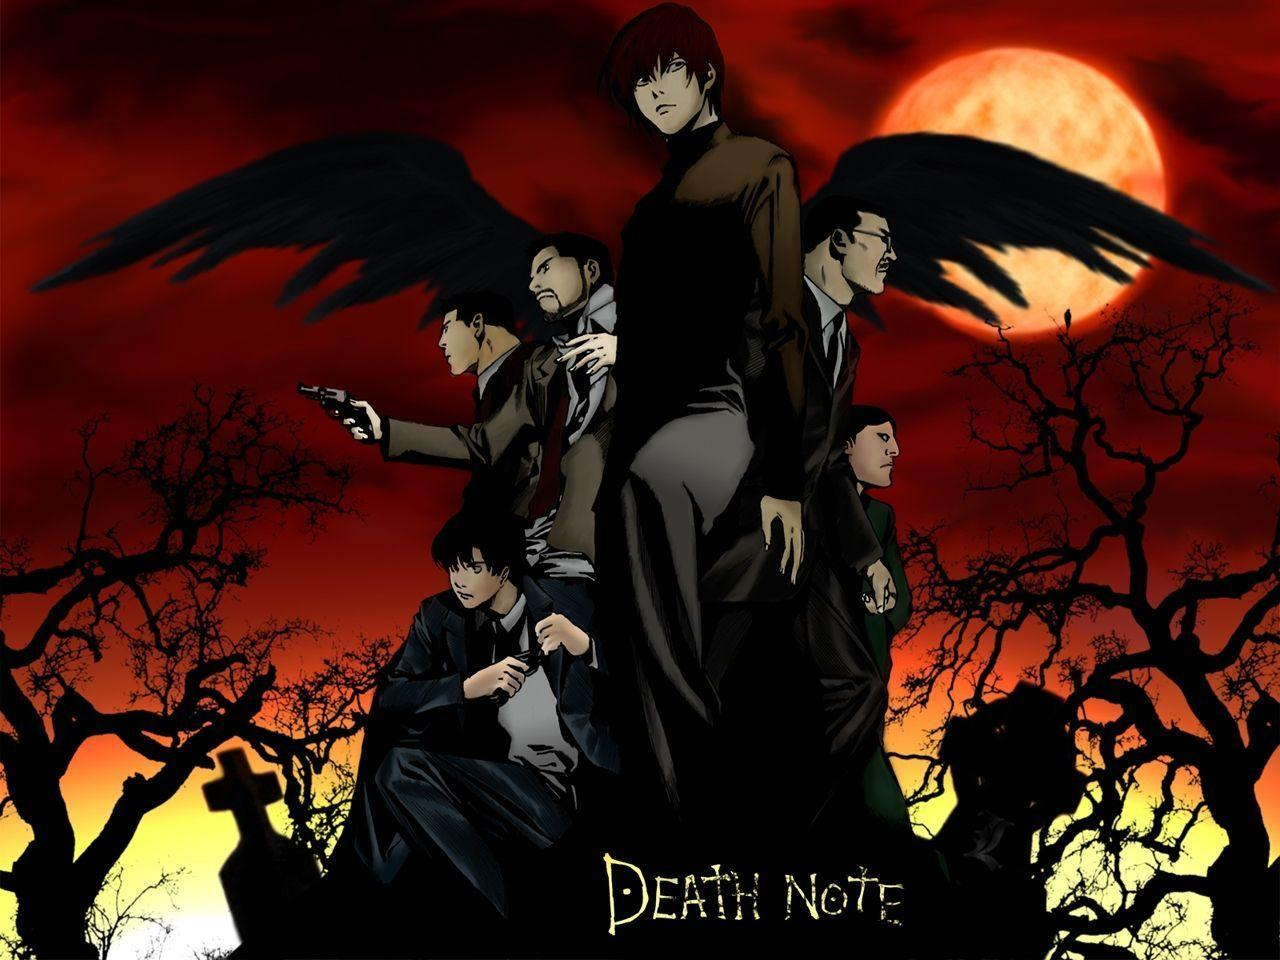 Death Note Wallpapers 4316 Images | wallgraf.